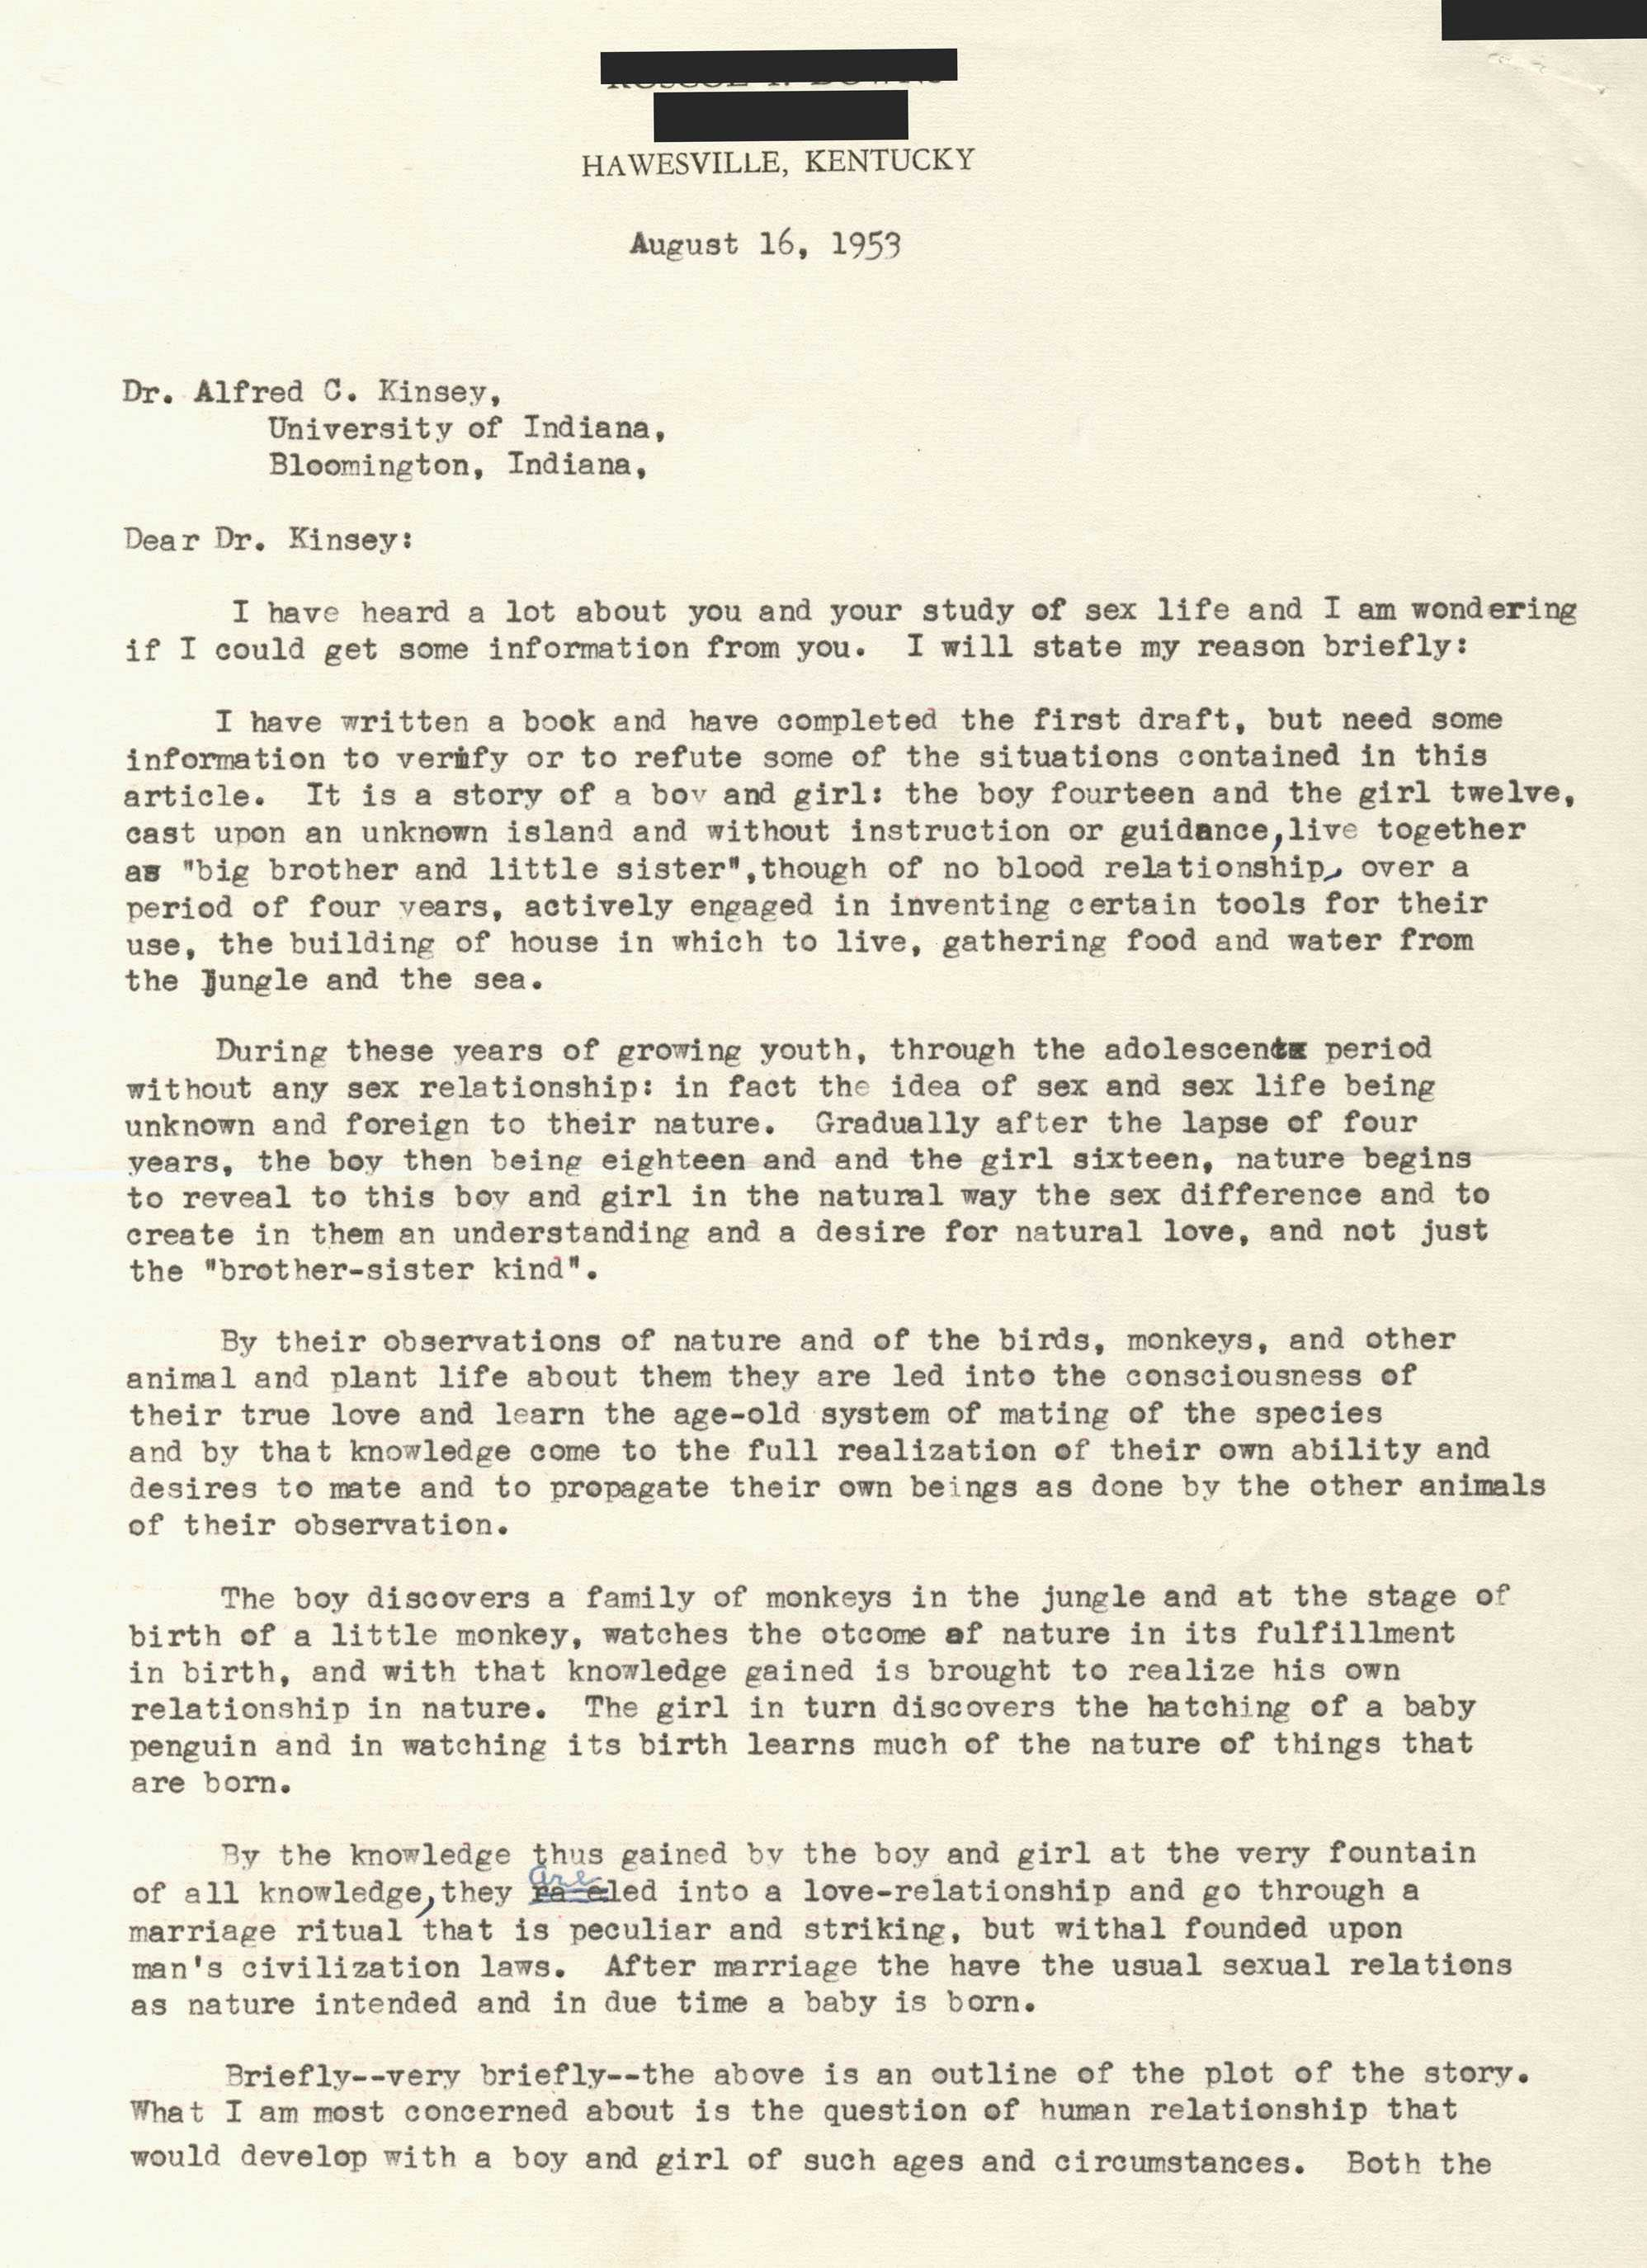 Letter from Anonymous to Dr  Alfred C  Kinsey, August 16